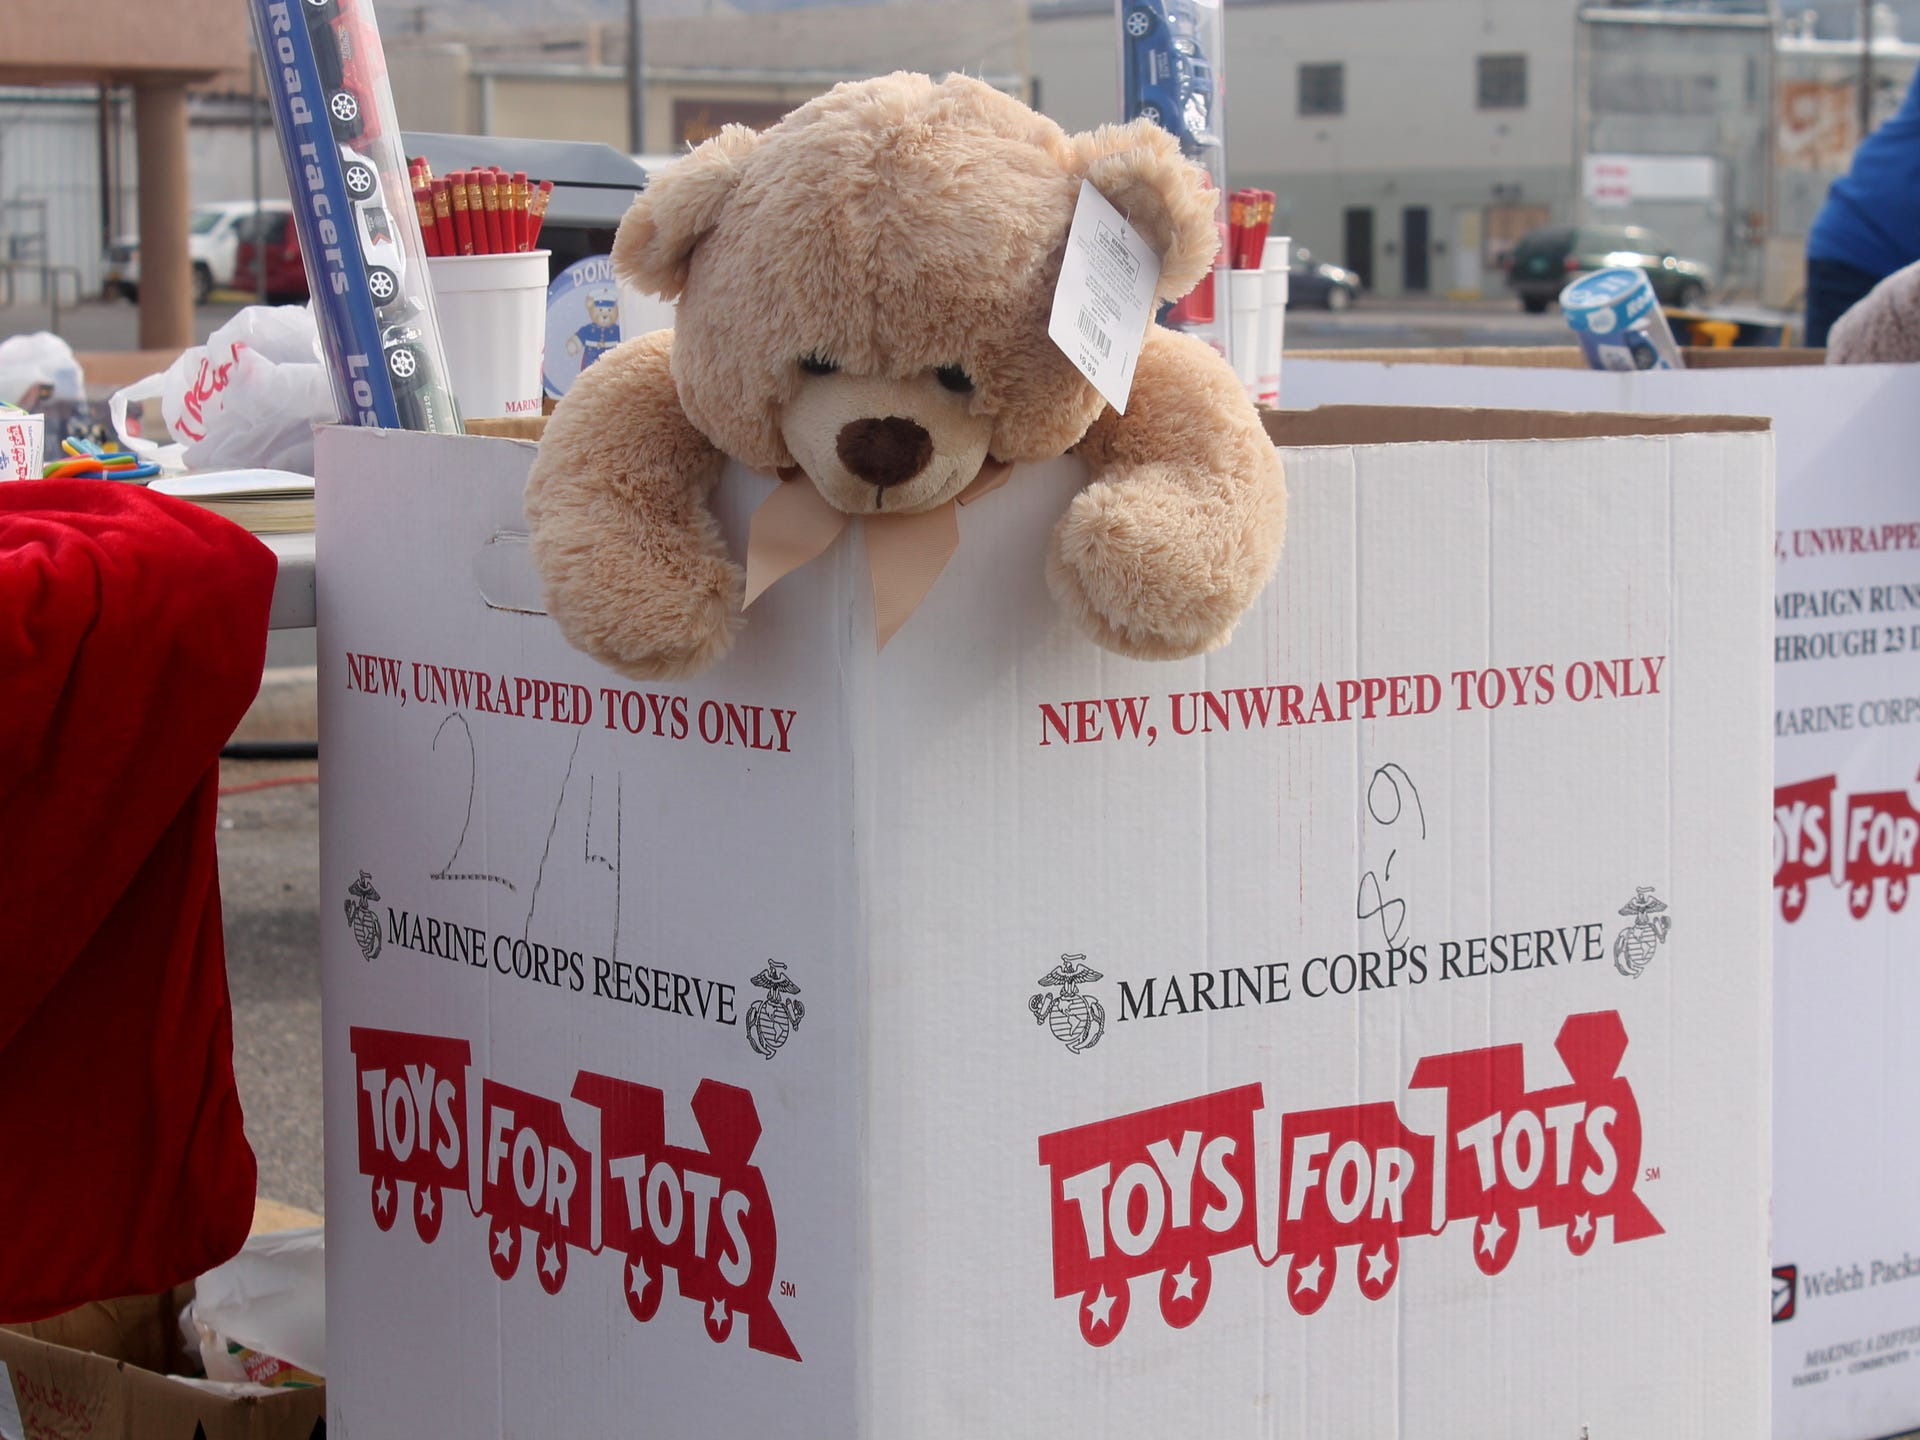 A Stuffed Teddy Bear In Toys For Tots Donation Box